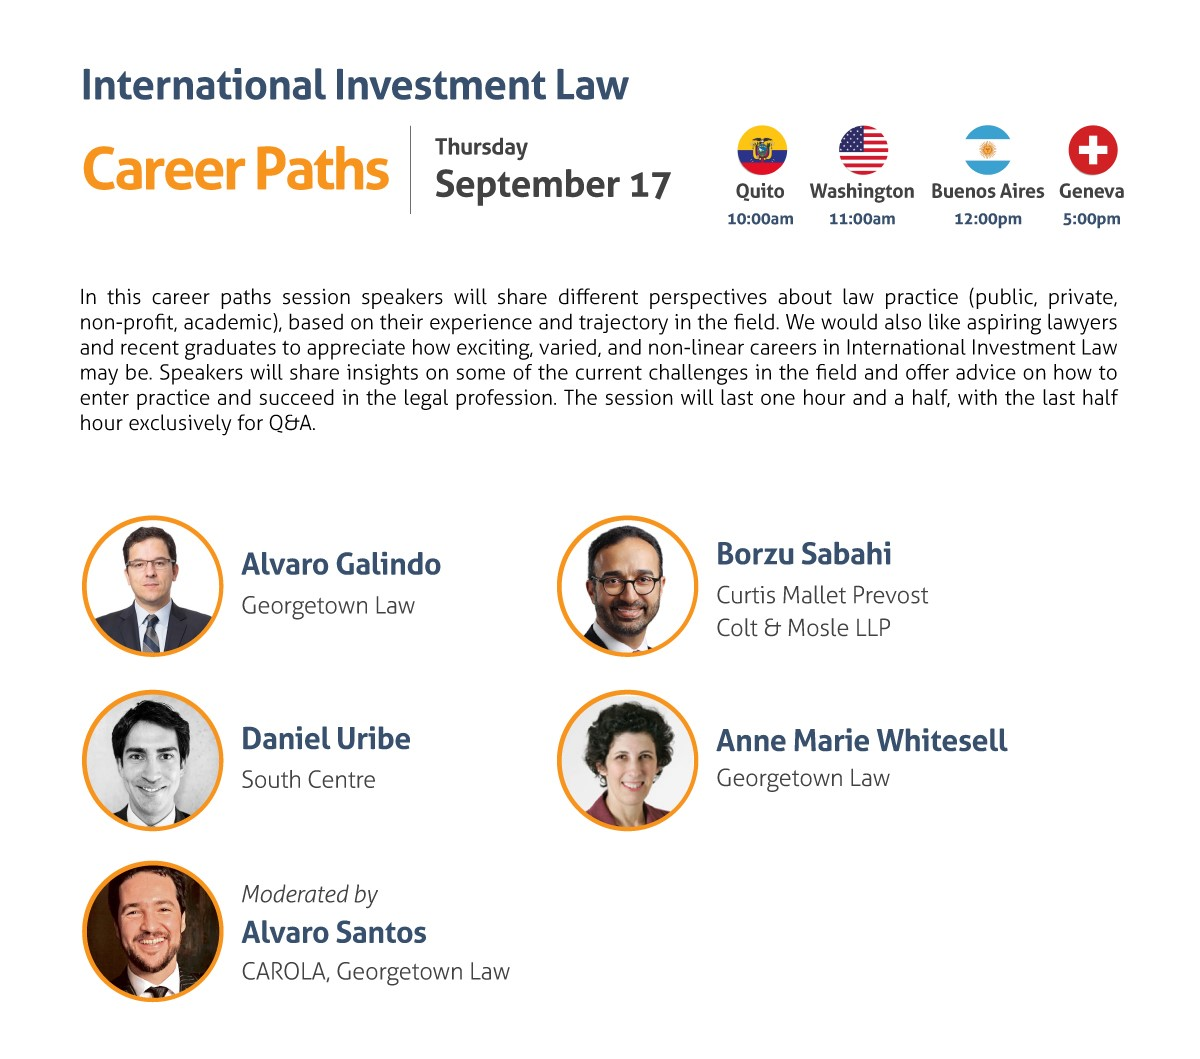 International Investment Law Career Paths Thursday, September 17 10:00 am Quito 11:00 am Washington, DC 12:00 pm Buenos Aires 5:00 pm Geneva In this career paths session speakers will share different perspectives about law practice (public, private, non-profit, academic), based on their experience and trajectory in the field. We would also like aspiring lawyers and recent graduates to appreciate how exciting, varied, and non-linear careers in International Investment Law may be. Speakers will share insights on some of the current challenges in the field and offer advice on how to enter practice and succeed in the legal profession. The session will last one hour and a half, with the last half hour exclusively for Q&A. Speakers: - Alvaro Galindo, Georgetown Law - David Gaukrodger, Organisation for Economic Co-operation and Development - Daniel Uribe, South Centre - Anne Marie Whitesell, Georgetown Law Moderated by: Alvaro Santos, CAROLA, Georgetown Law